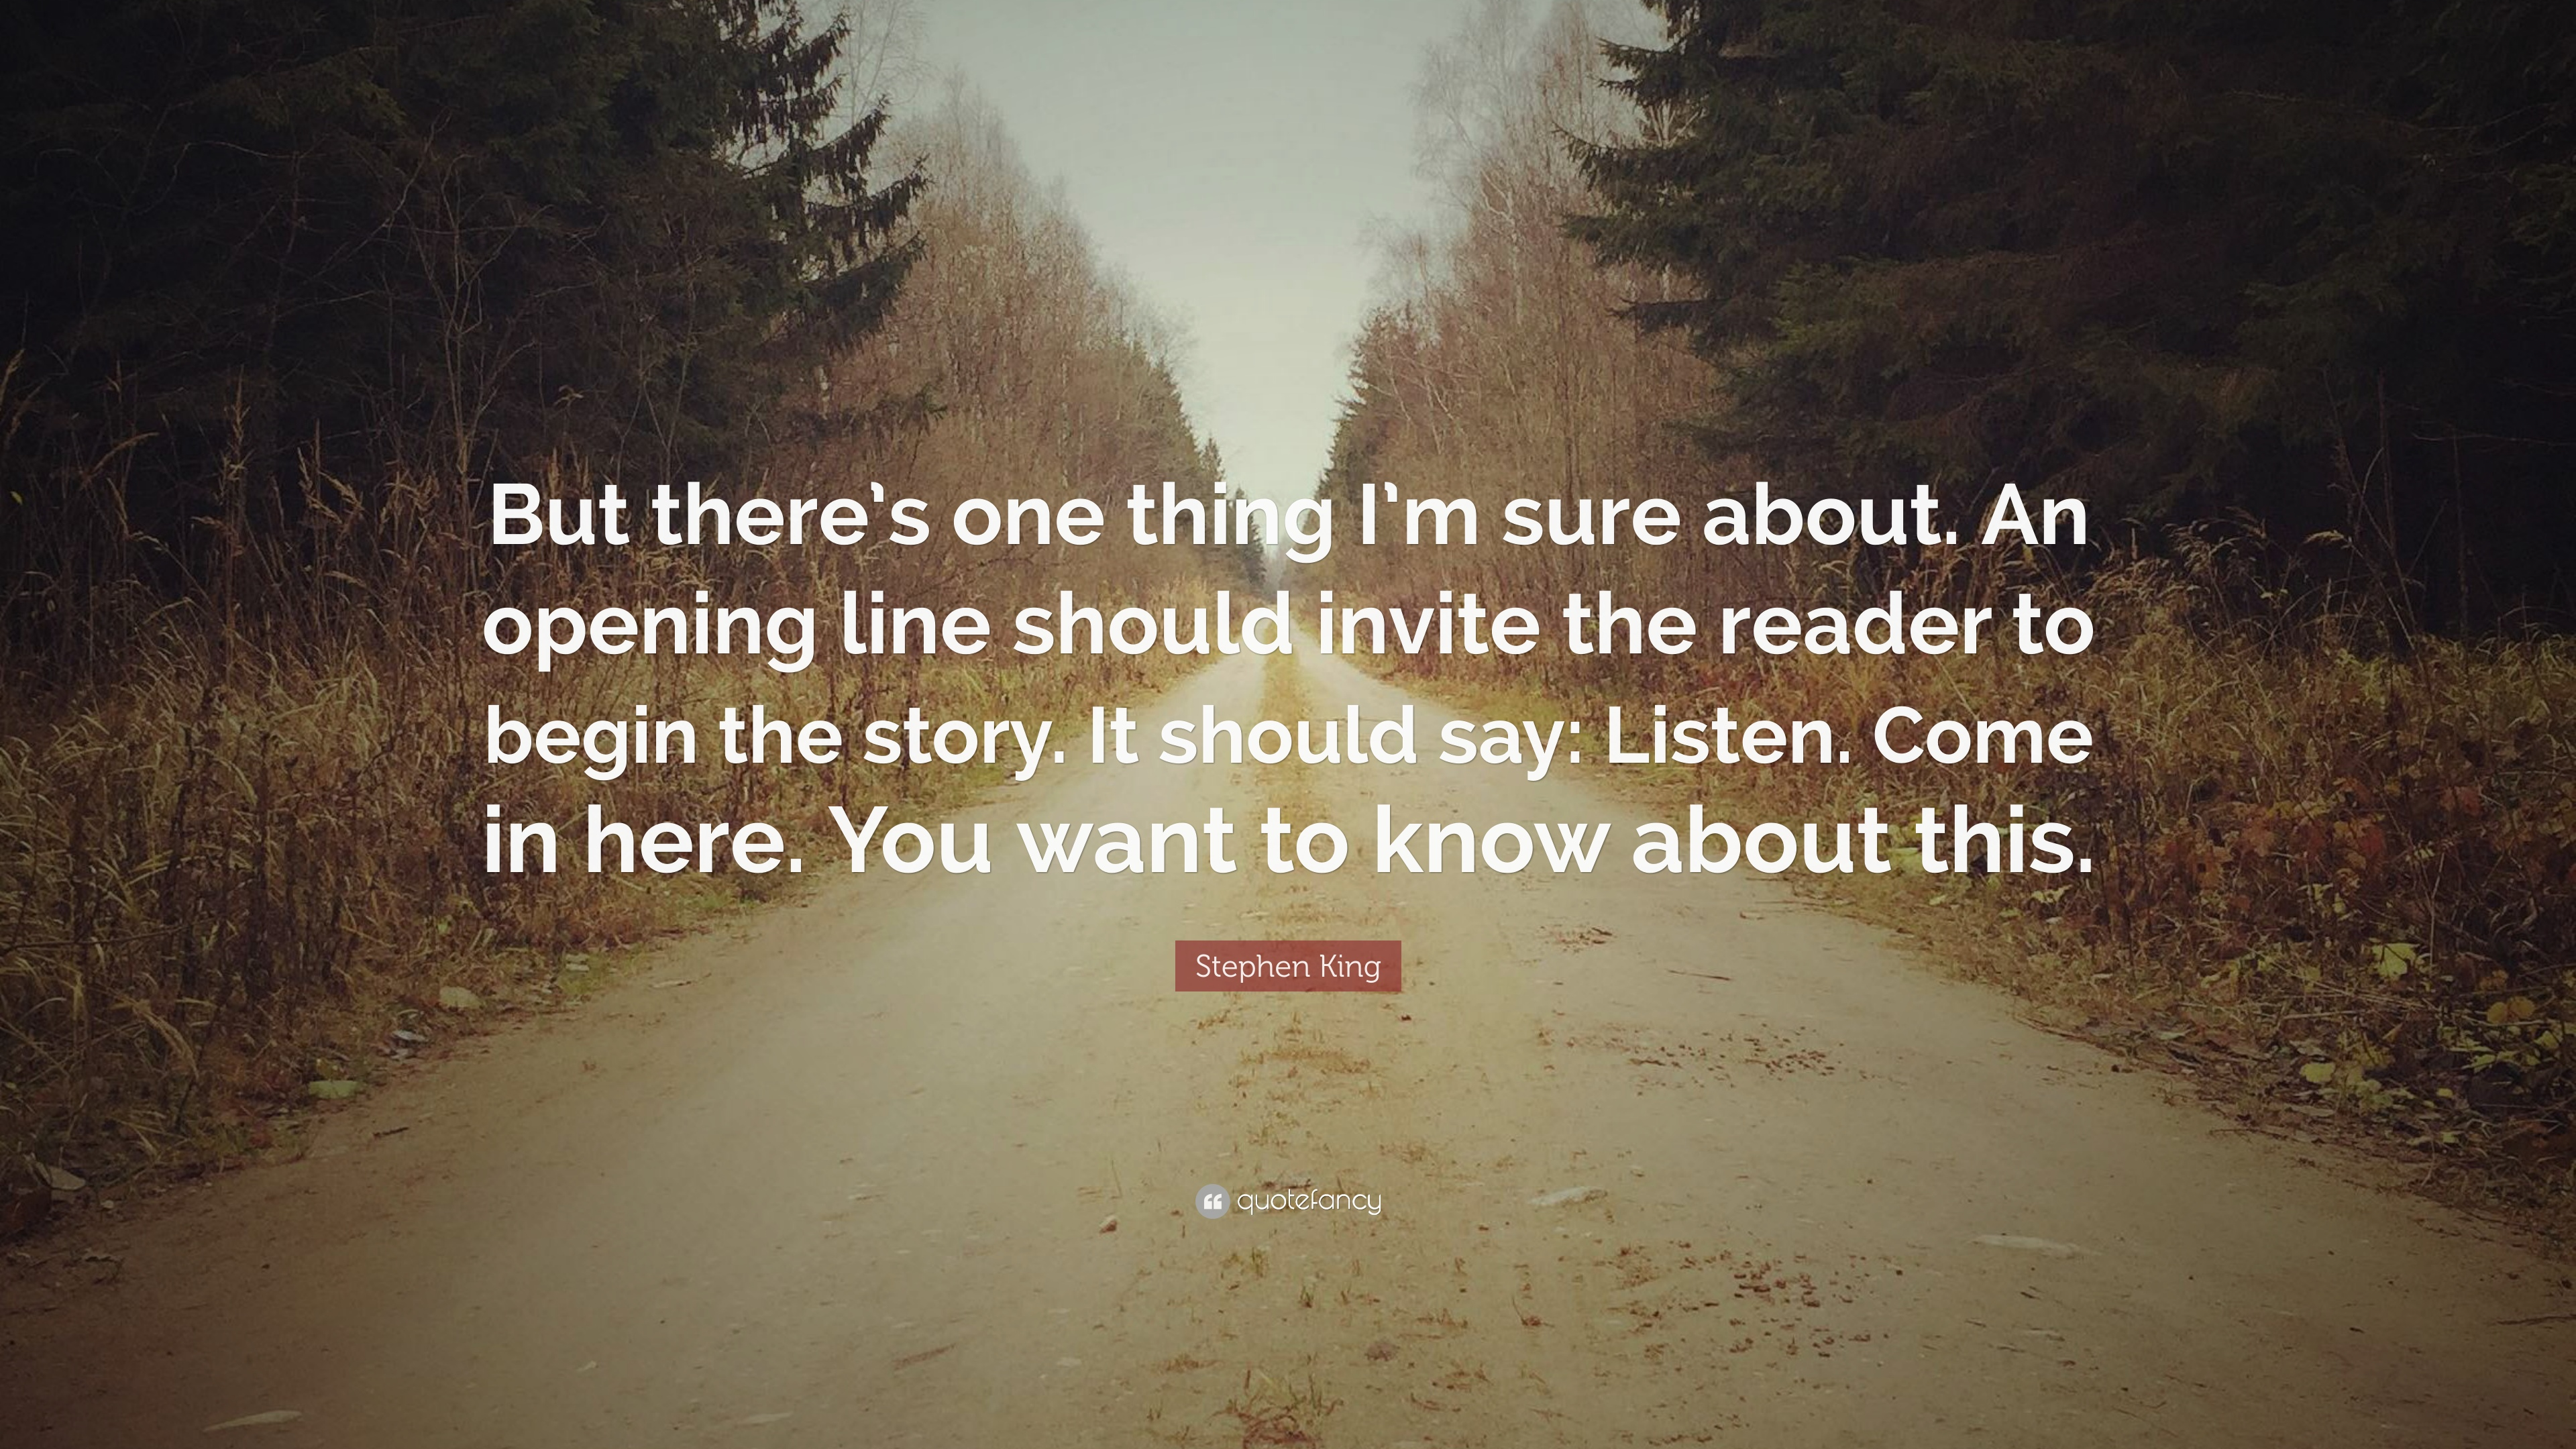 Stephen King Quotes - Stephen king quote but there s one thing i m sure about an